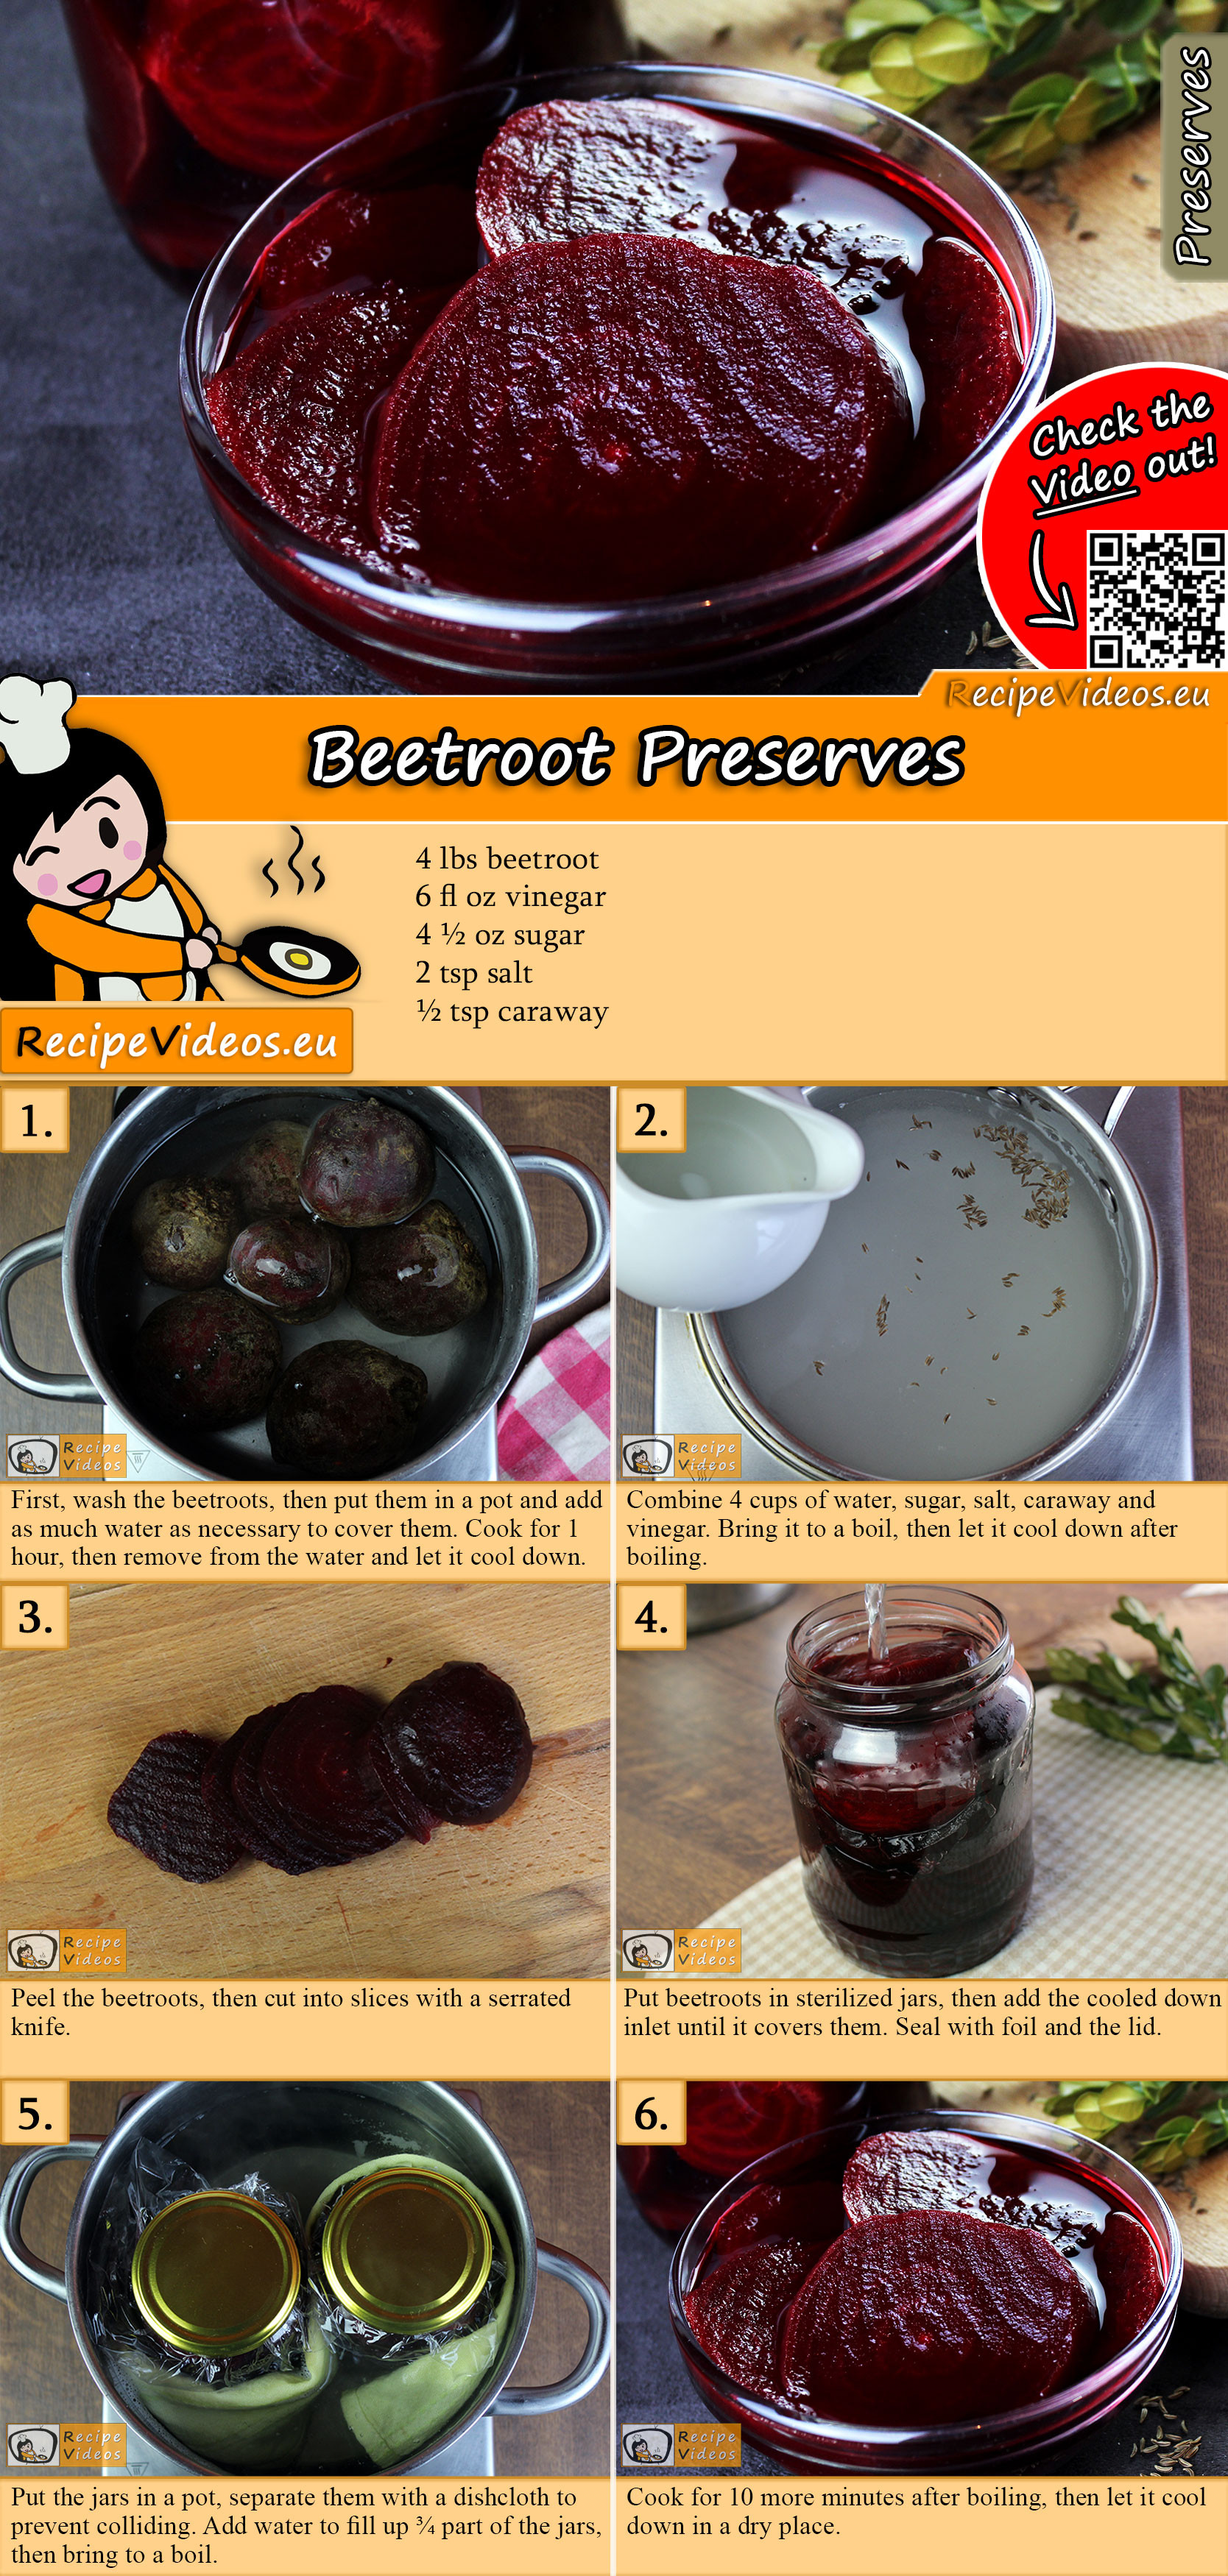 Beetroot Preserves recipe with video